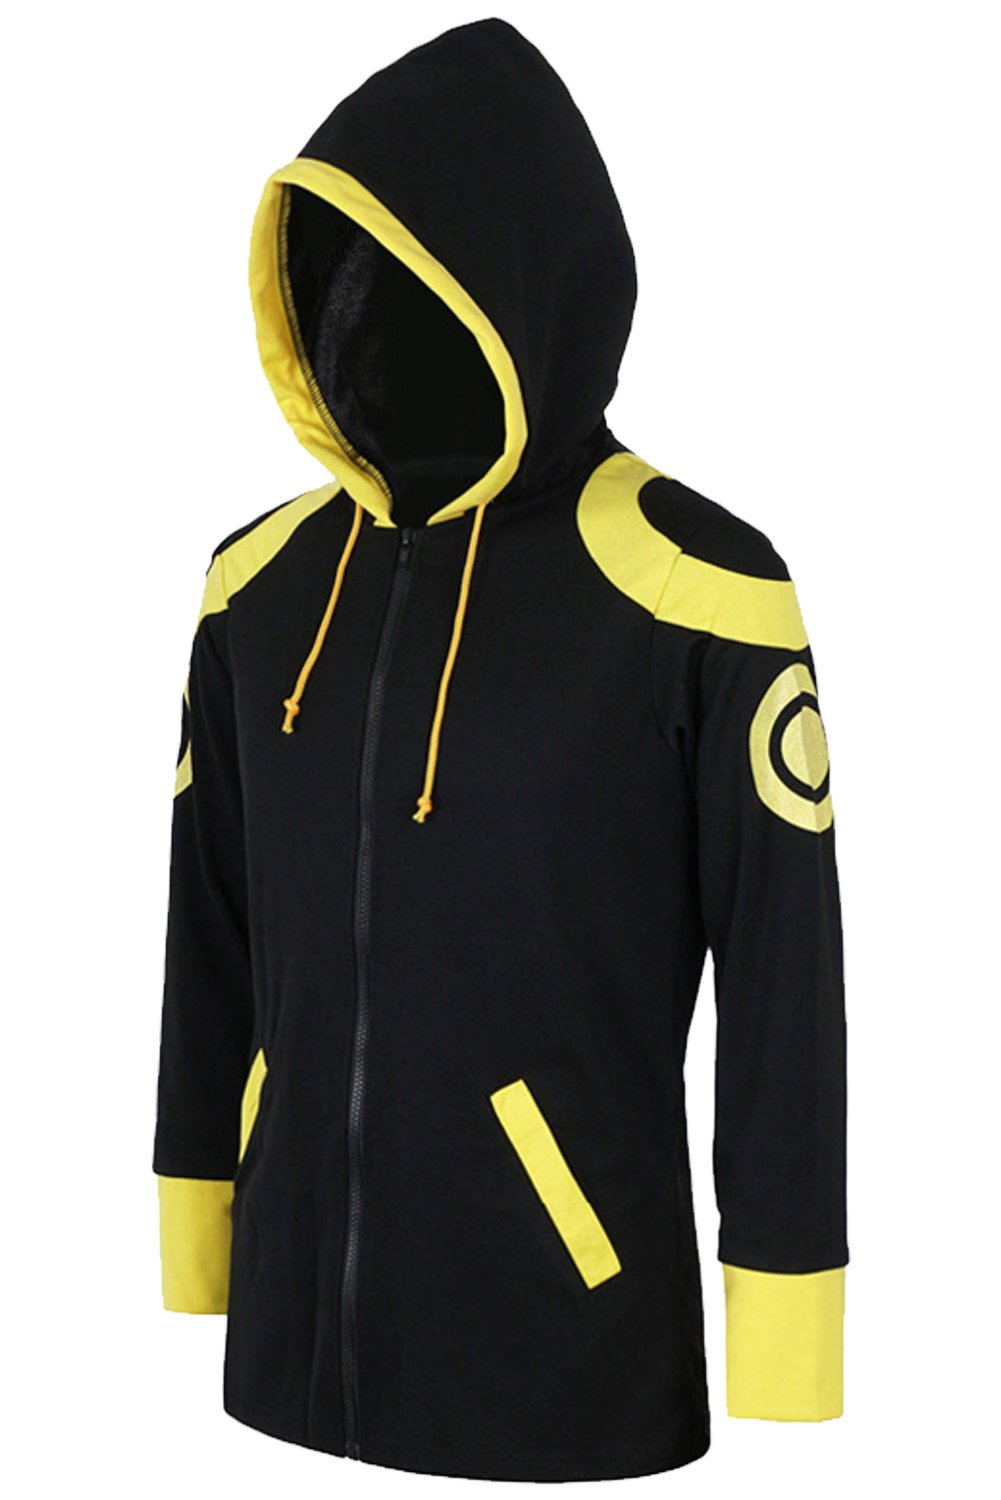 Costhat Casual Mystic Messenger 707 Extreme Luciel Choi Jacket Hoodie by Costhat (Image #2)